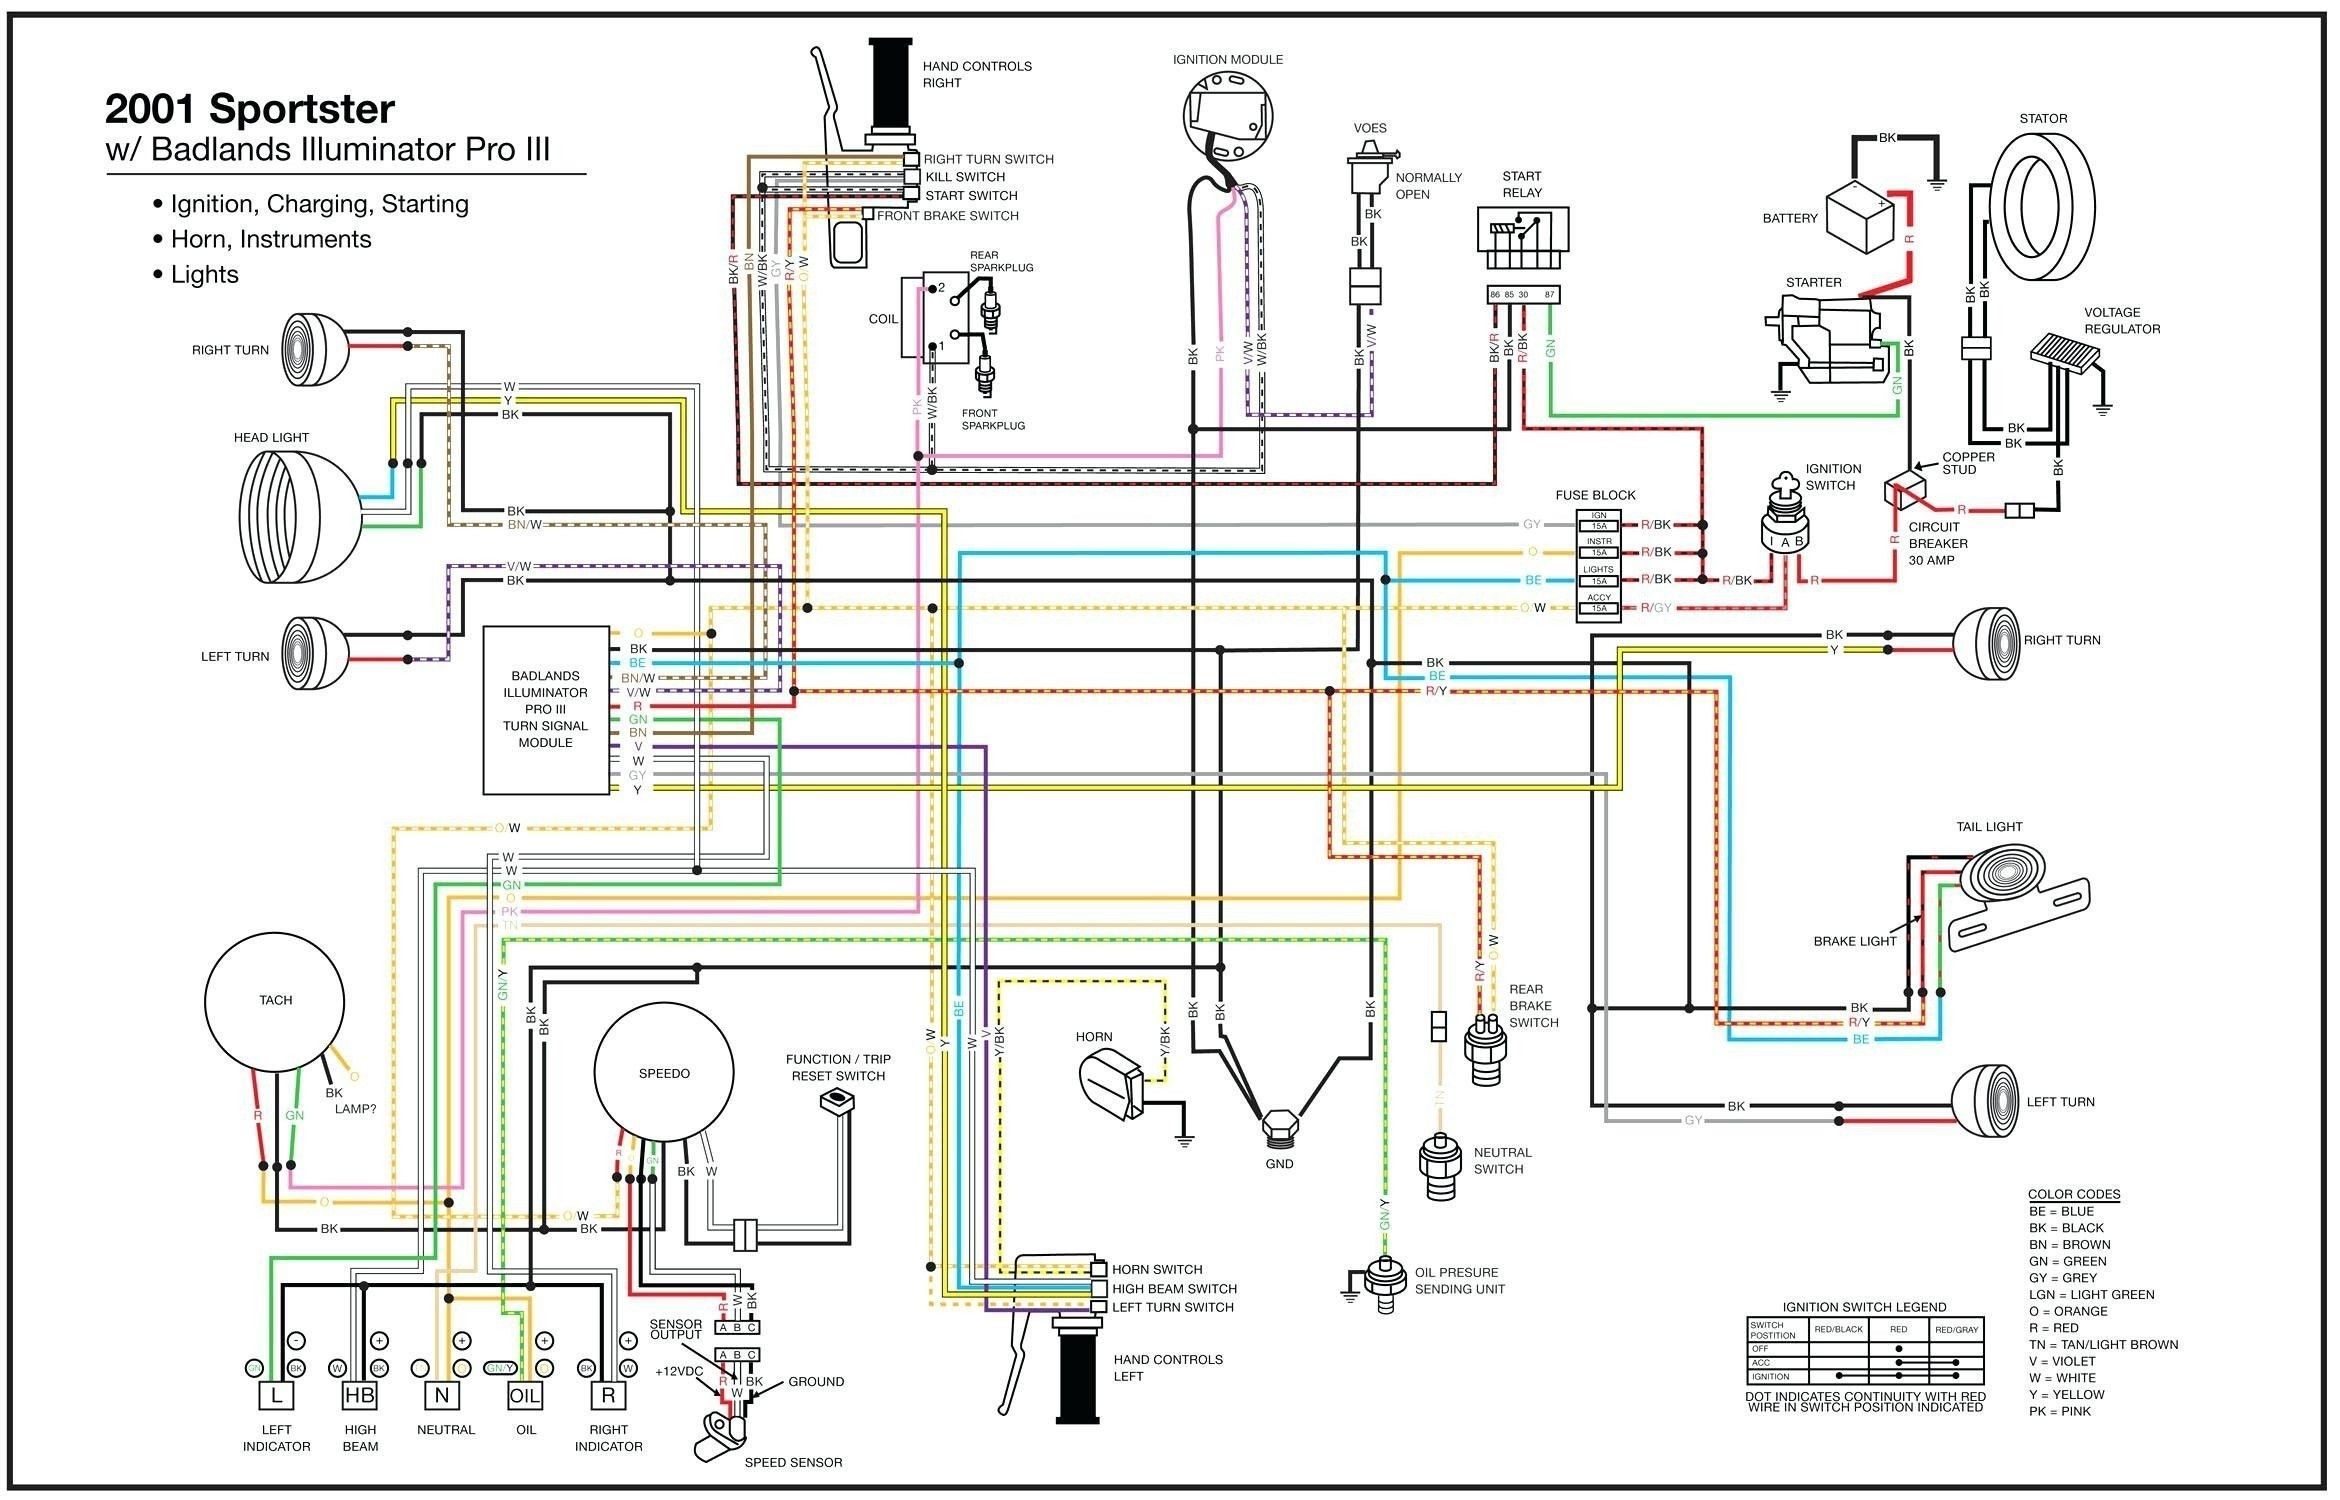 Fresh Wiring Diagram For Hazard Light Switch For Motorcycle Diagrams Digramssample Diagramimages Wiring Motorcycle Wiring Harley Davidson Sportster Bmw E46